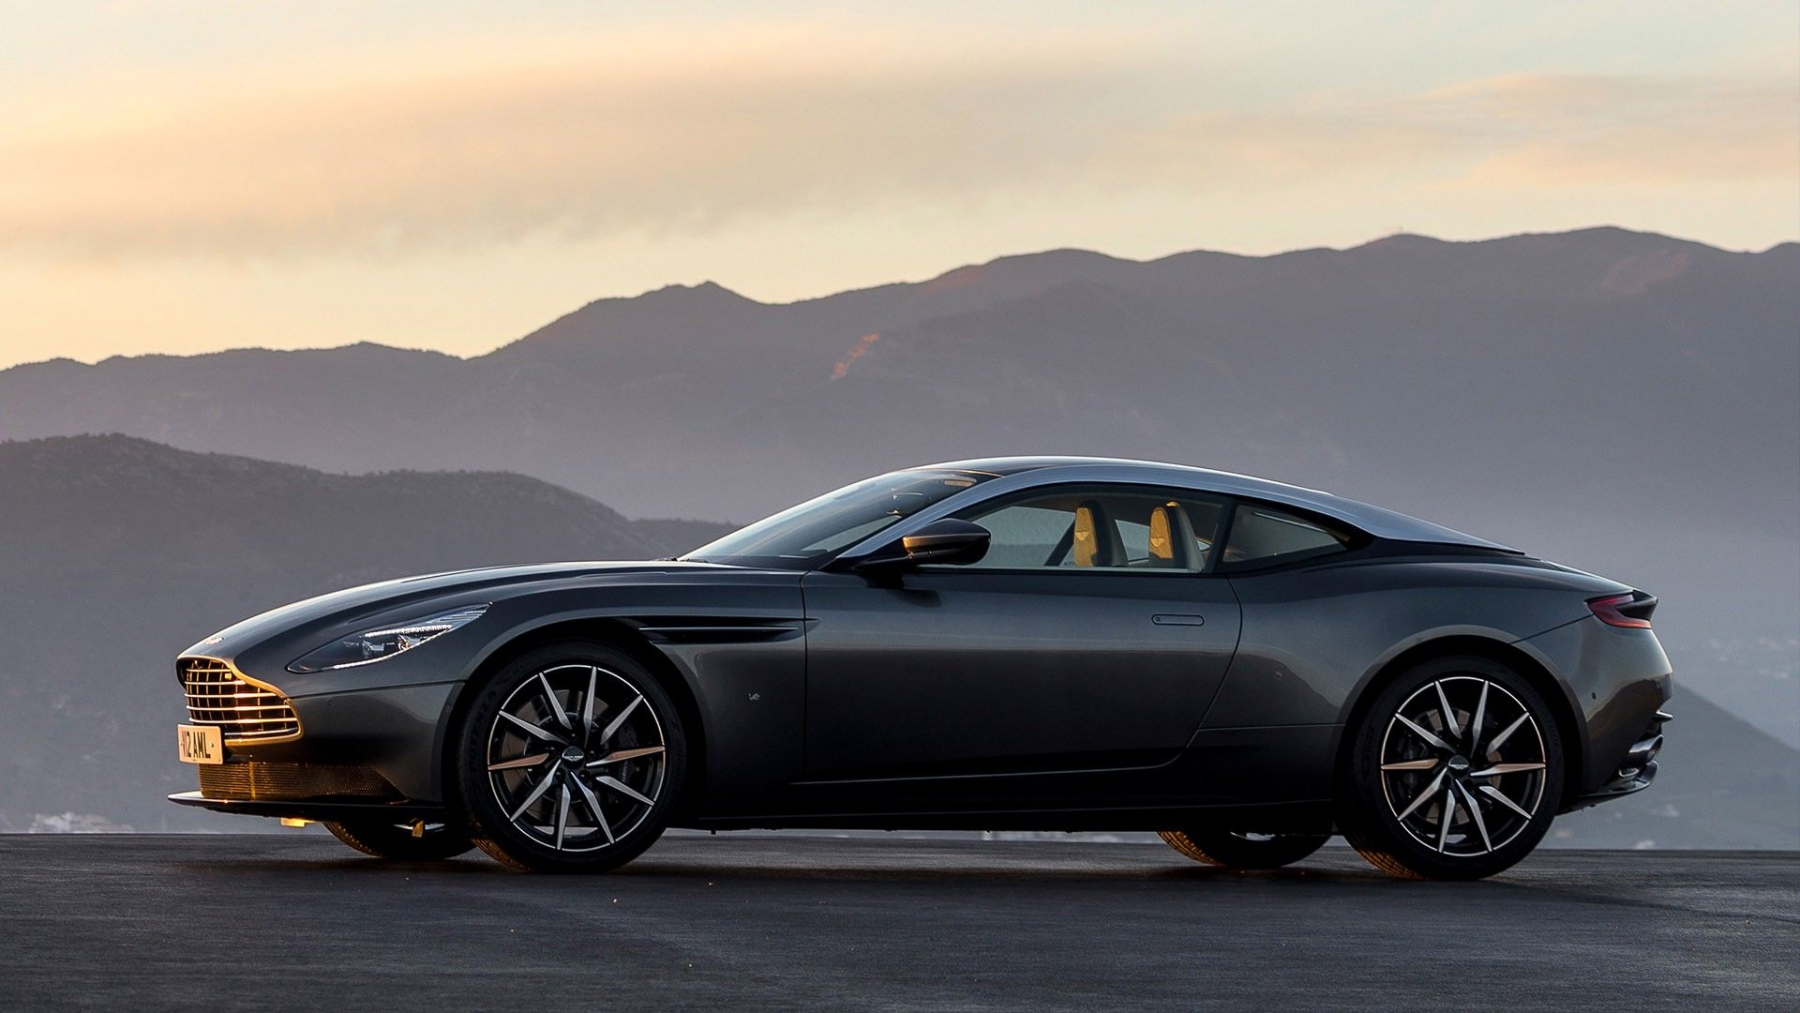 Aston Martin Db11 Hd Wallpapers Background Images Photos